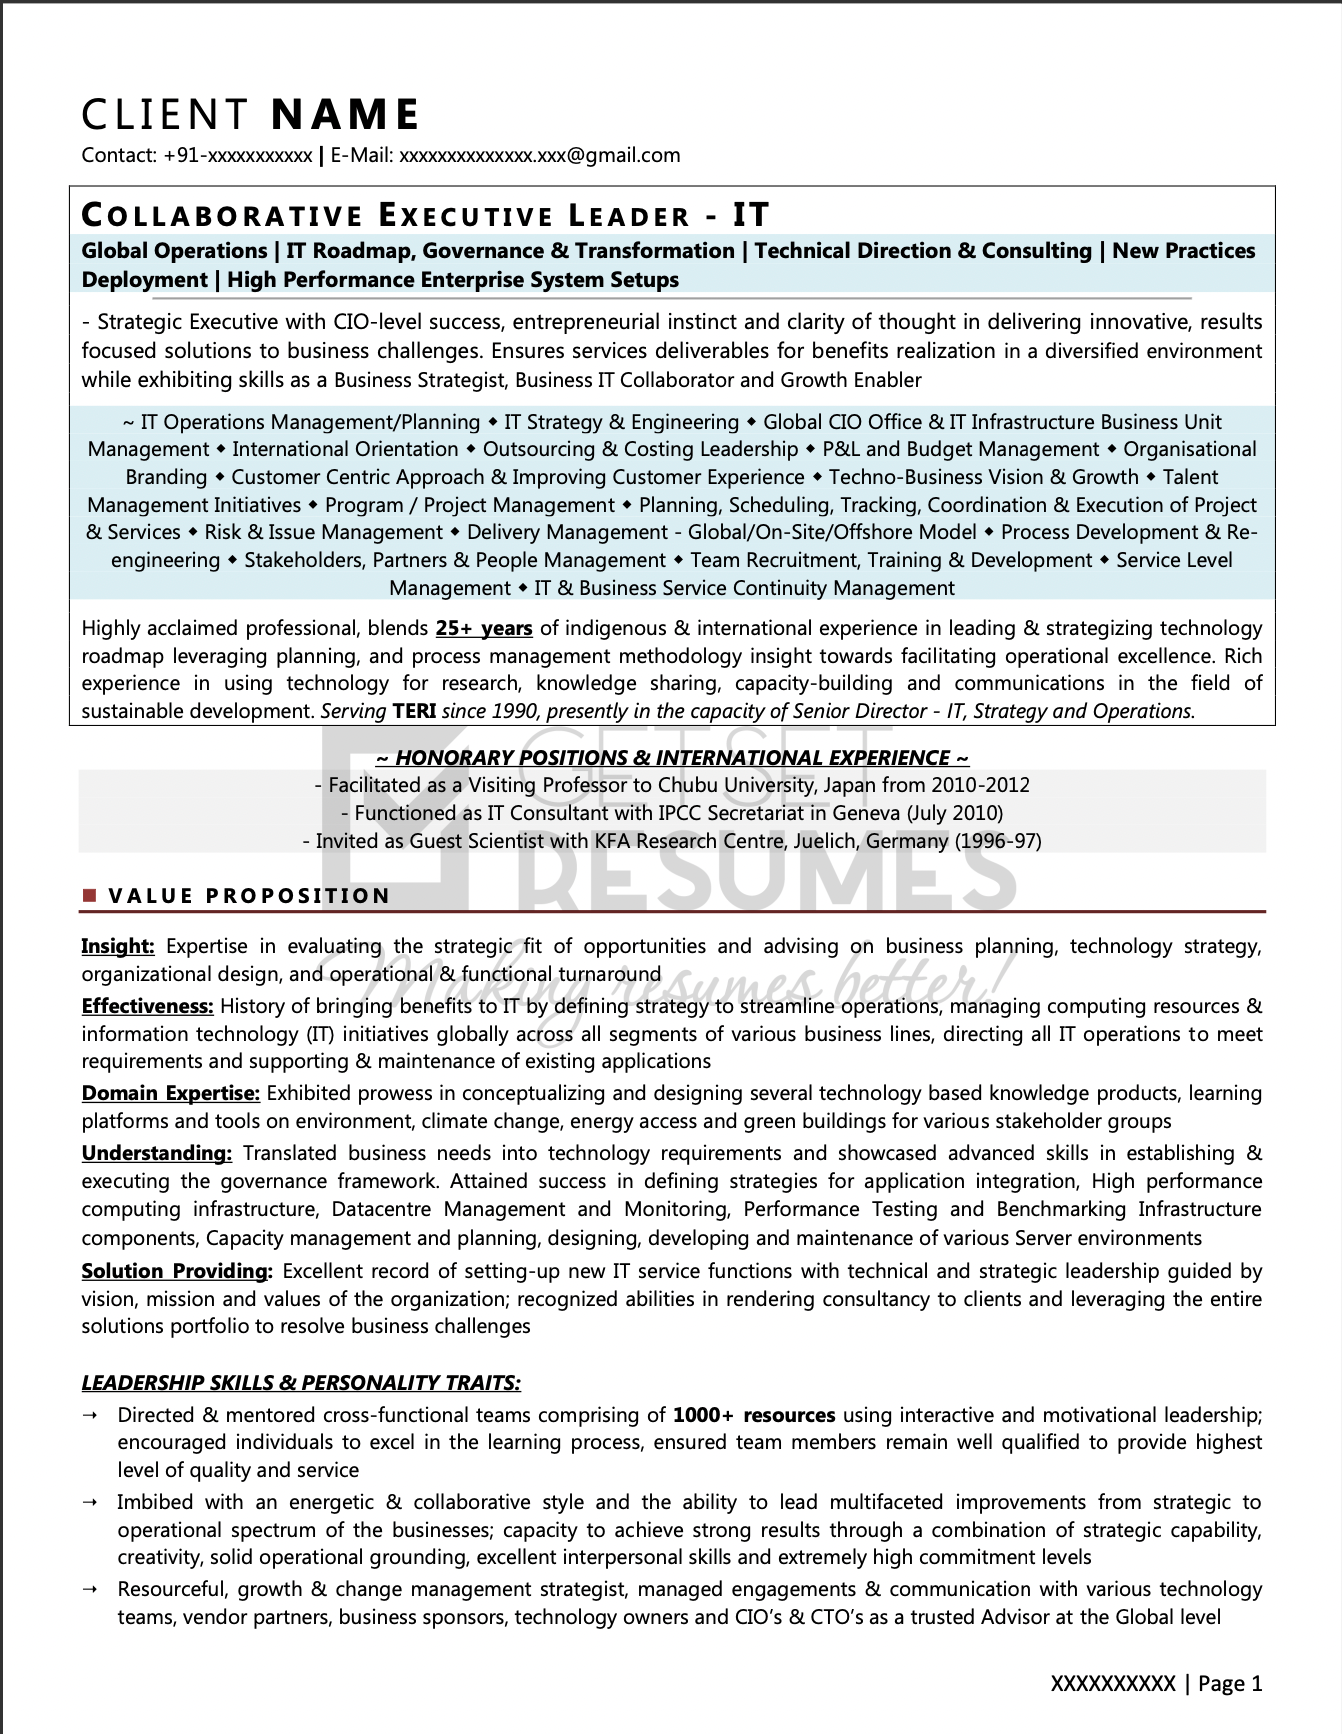 Sample Resume for Vice President (VP) of IT Strategy & Operations with 22 years experience